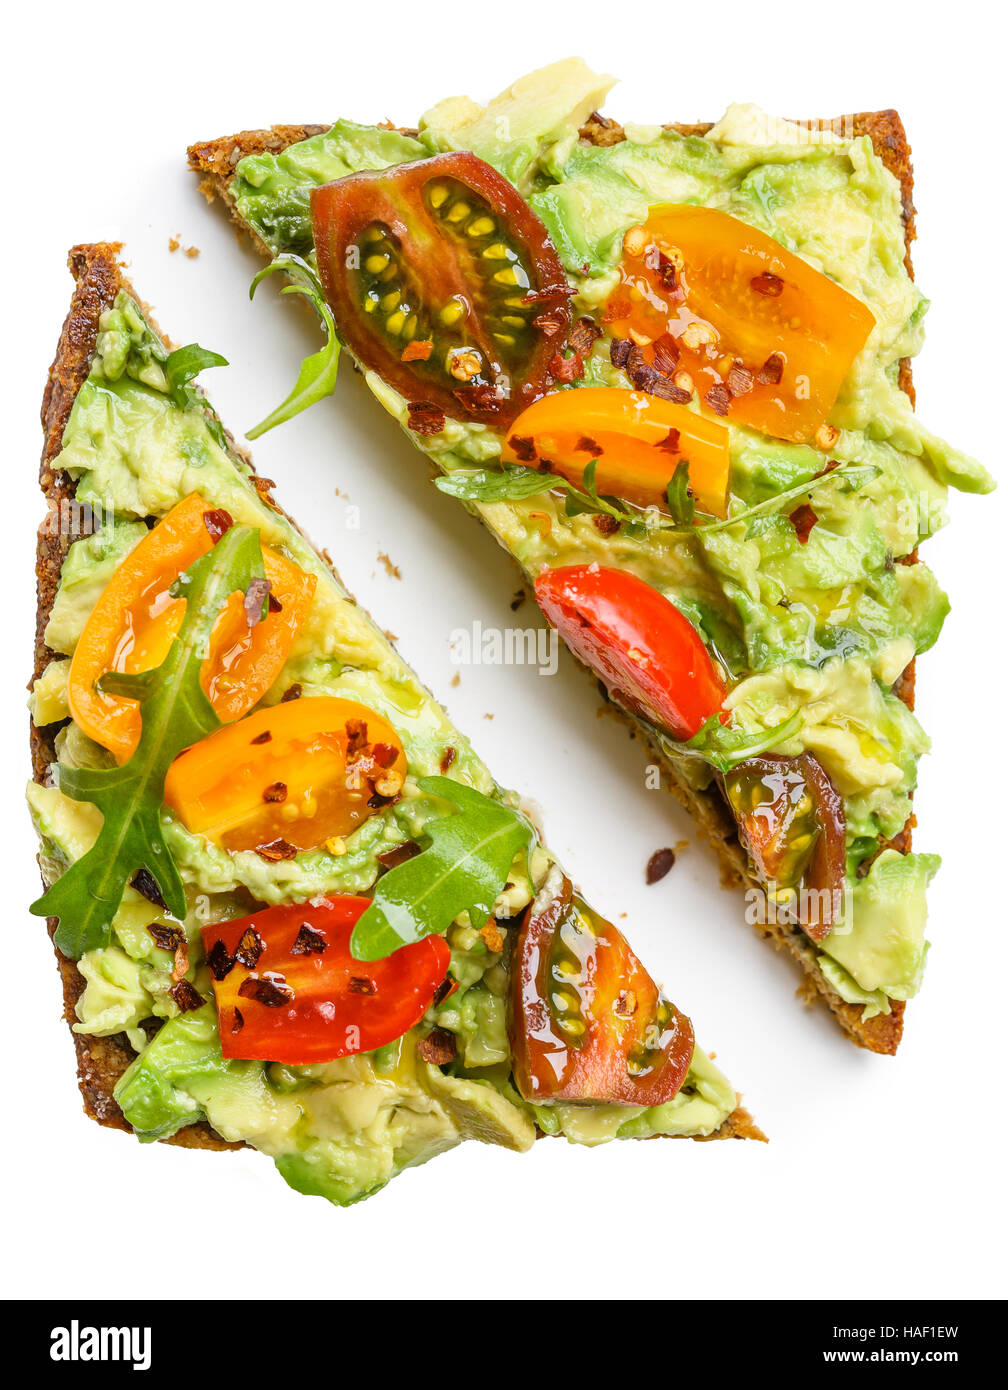 Slice of rye bread with avocado, colorful tomatoes and aragula leaves - Stock Image